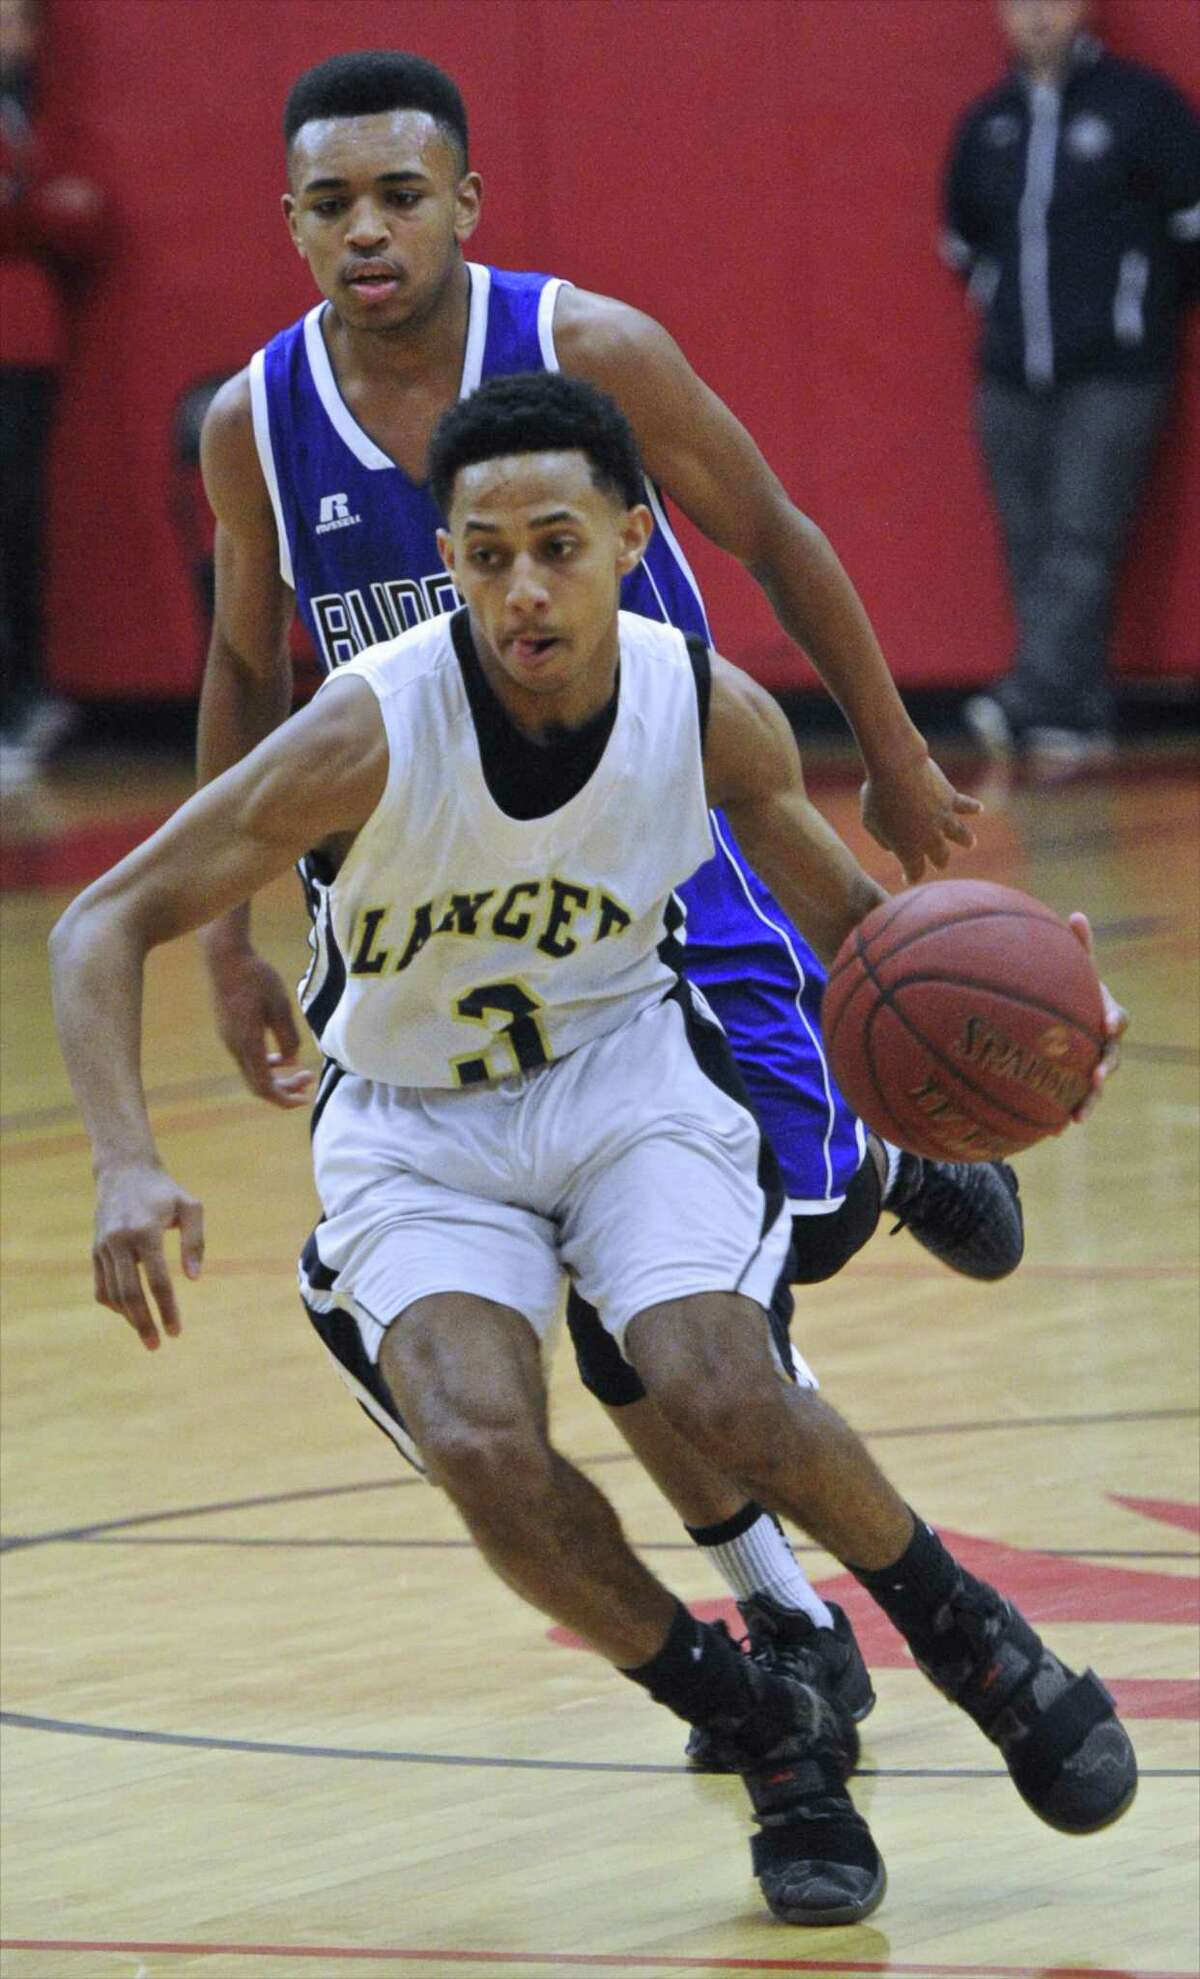 Notre Dame-Fairfield guard Tyler Bourne drives past a Bunnell defender during action in the SWC tournament championship on March 3. Bourne scored 21 points and was named the MVP as the Lancers rolled to an 88-62 win, capturing its second straight SWC crown.